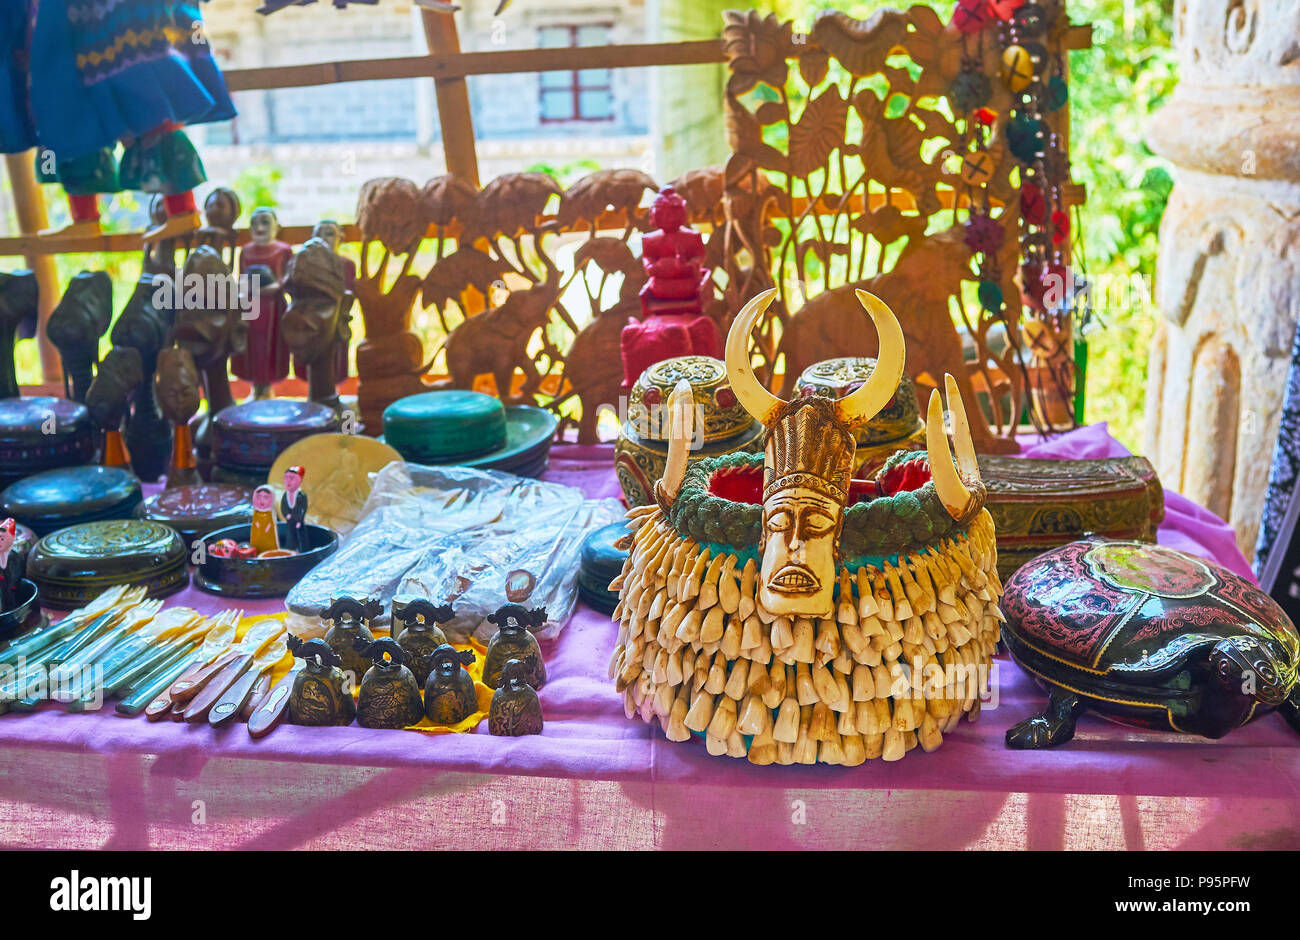 The counter of tourist stall with different souvenirs and gifts for interior design, such as wooden sculptures, bells and tribal male headdress, decor - Stock Image